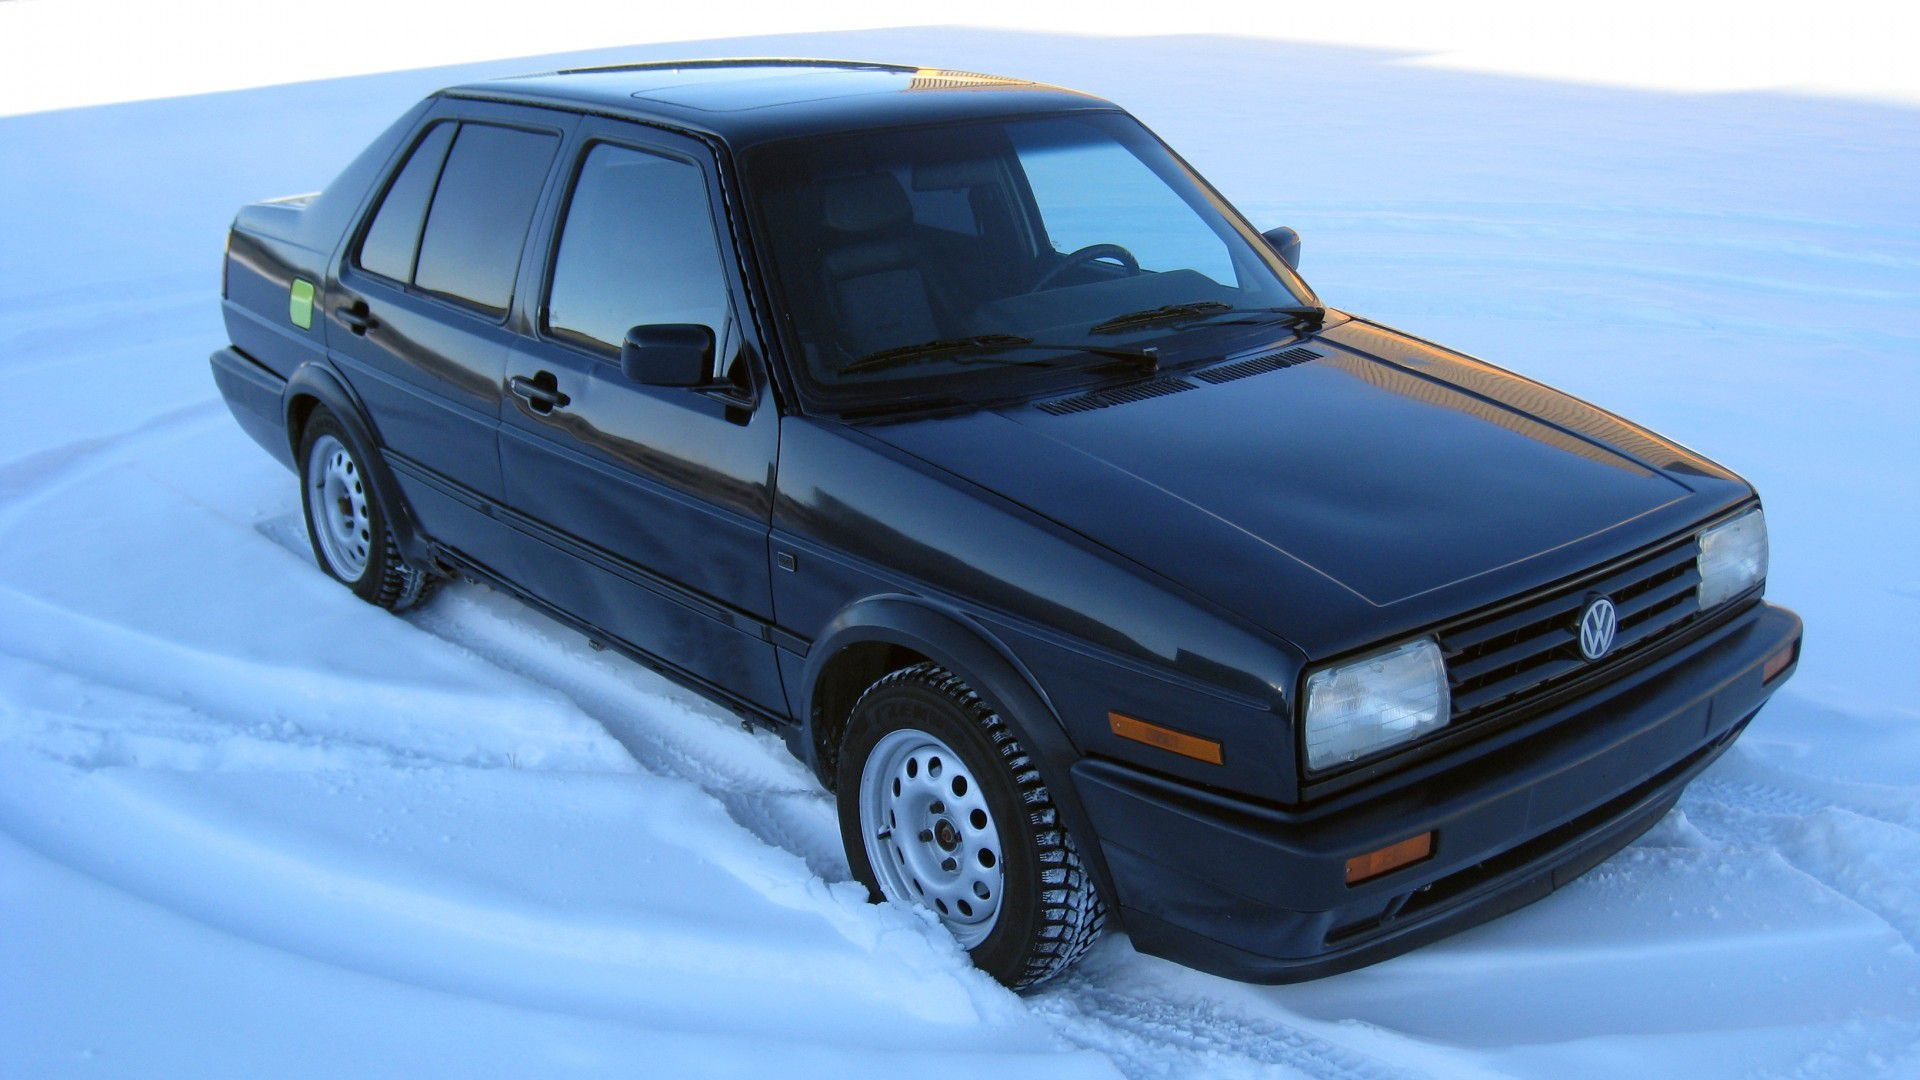 Volkswagen Jetta A2 » Definitive List - Cars